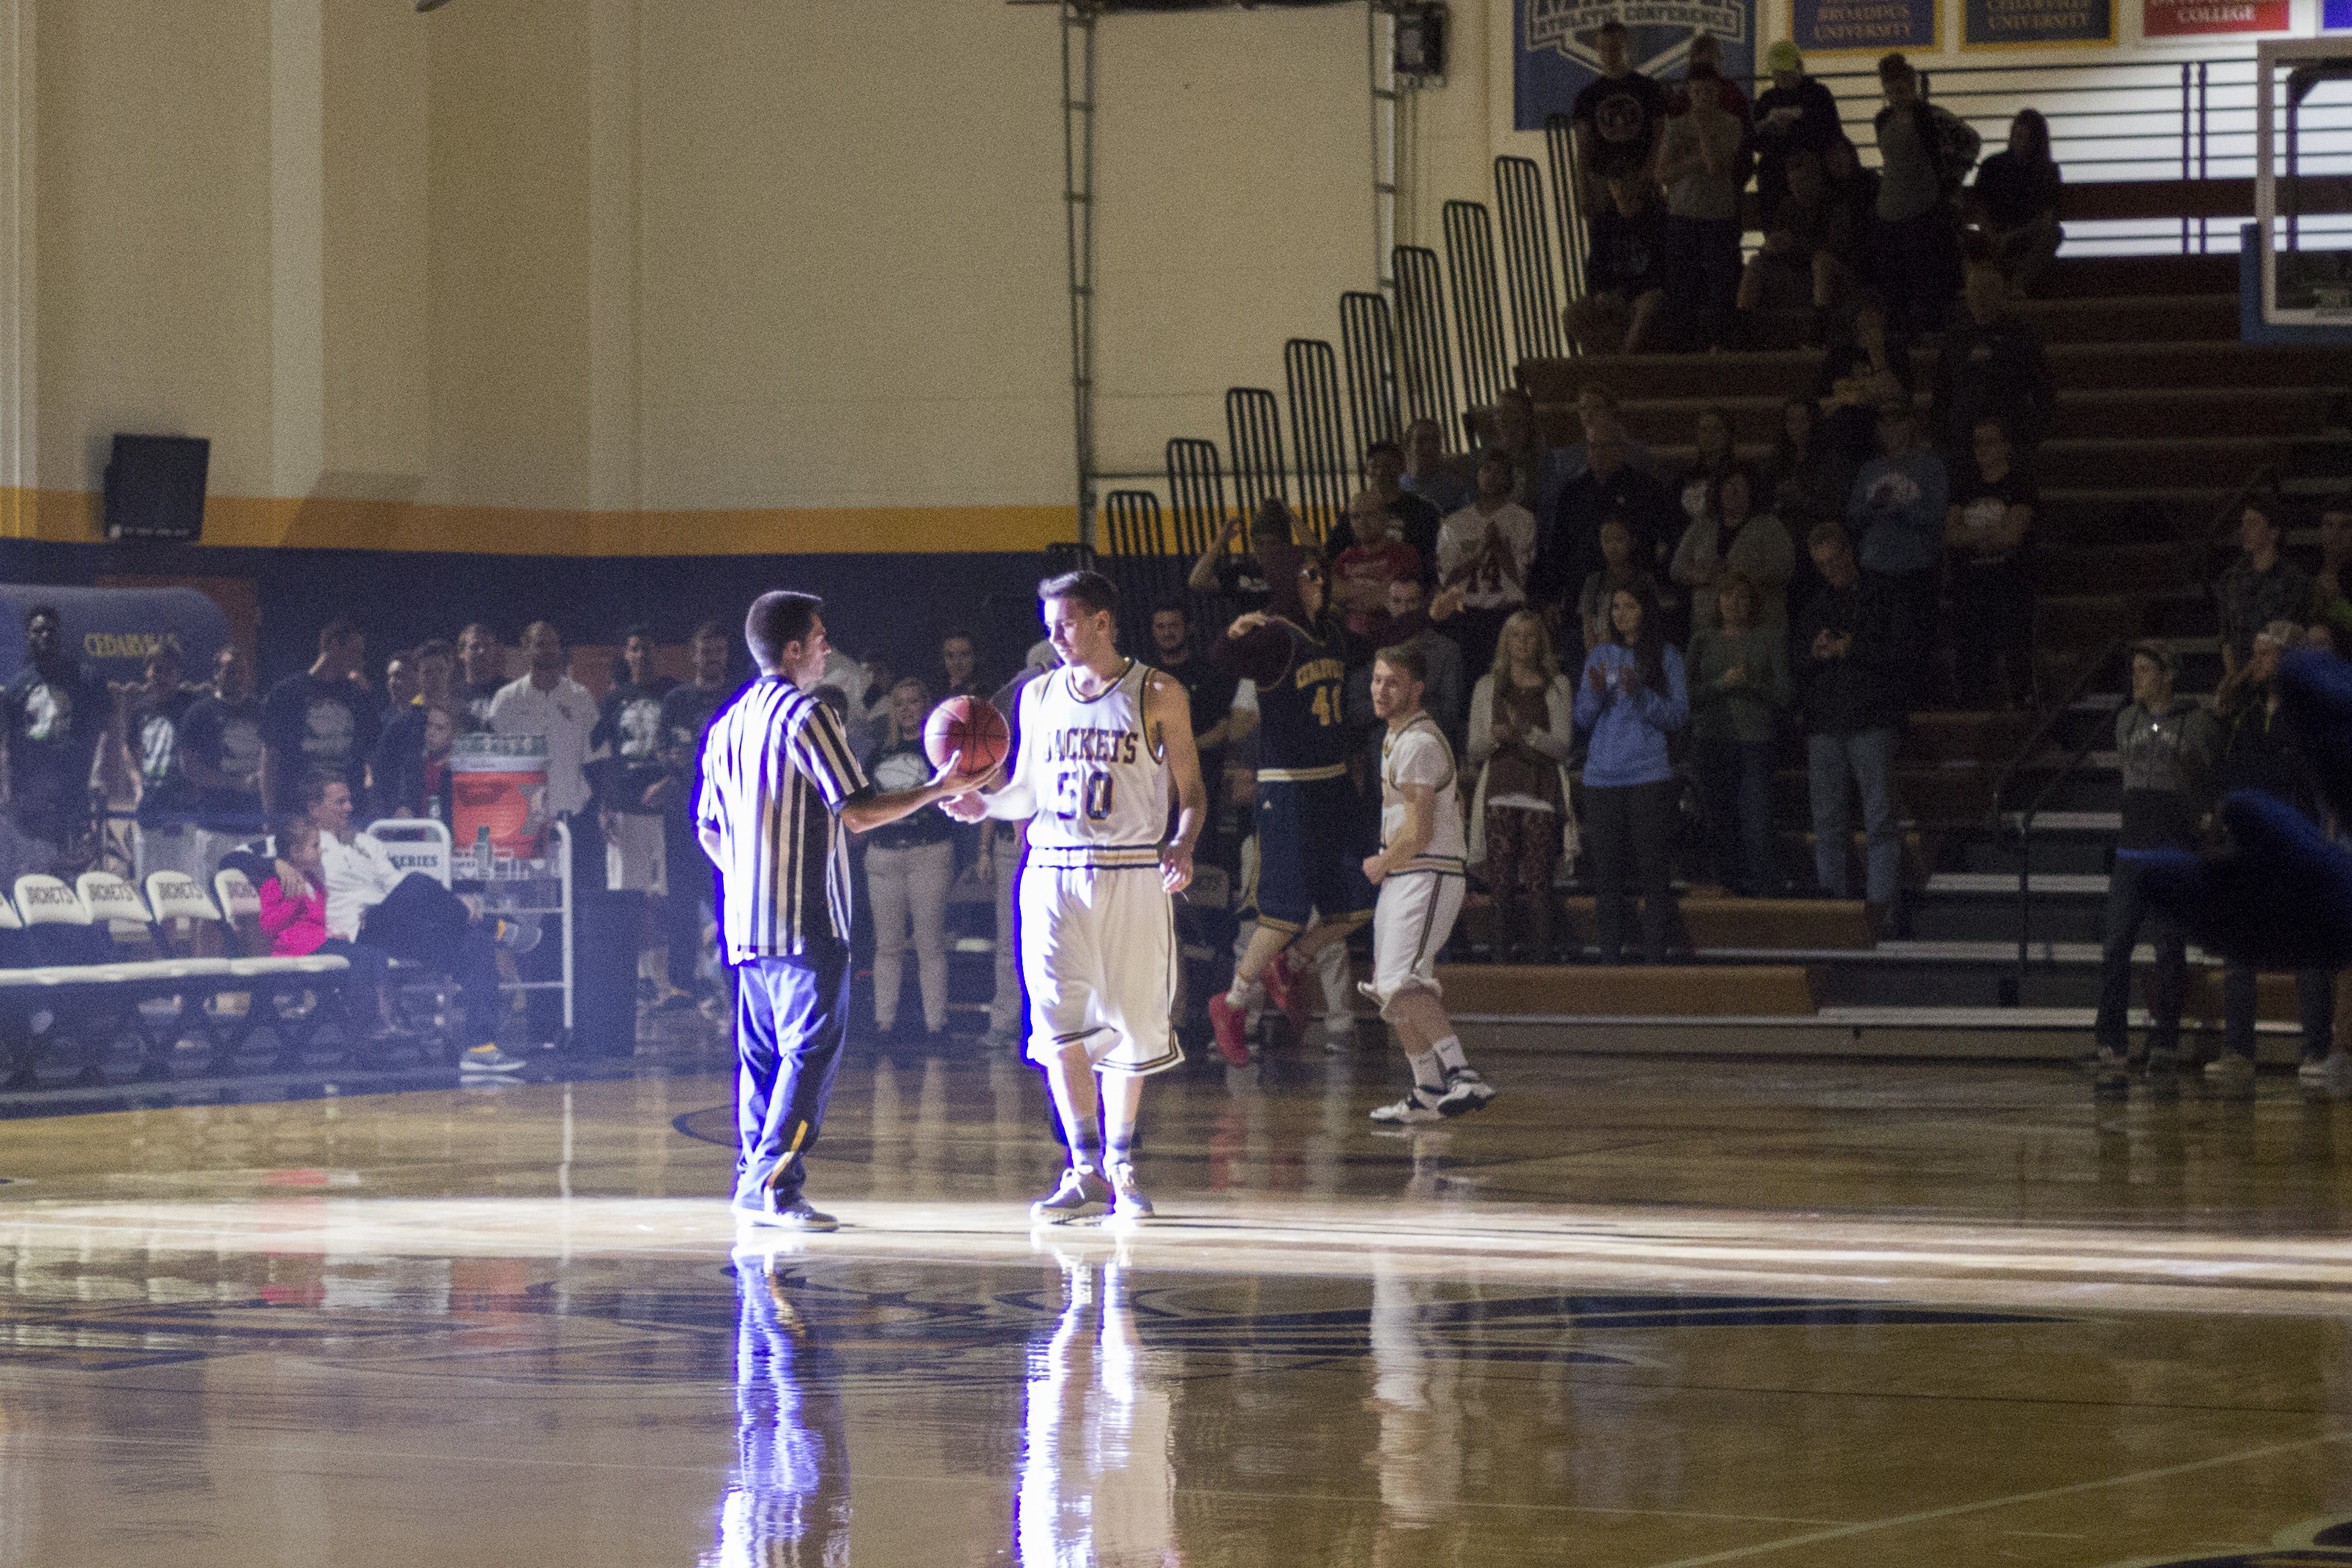 Junior Vincenzo Morrone kicks off the night with a skit on how not to play basketball. Morrone led the crowd in scolding the four players involved when each of them broke a rule of basketball.